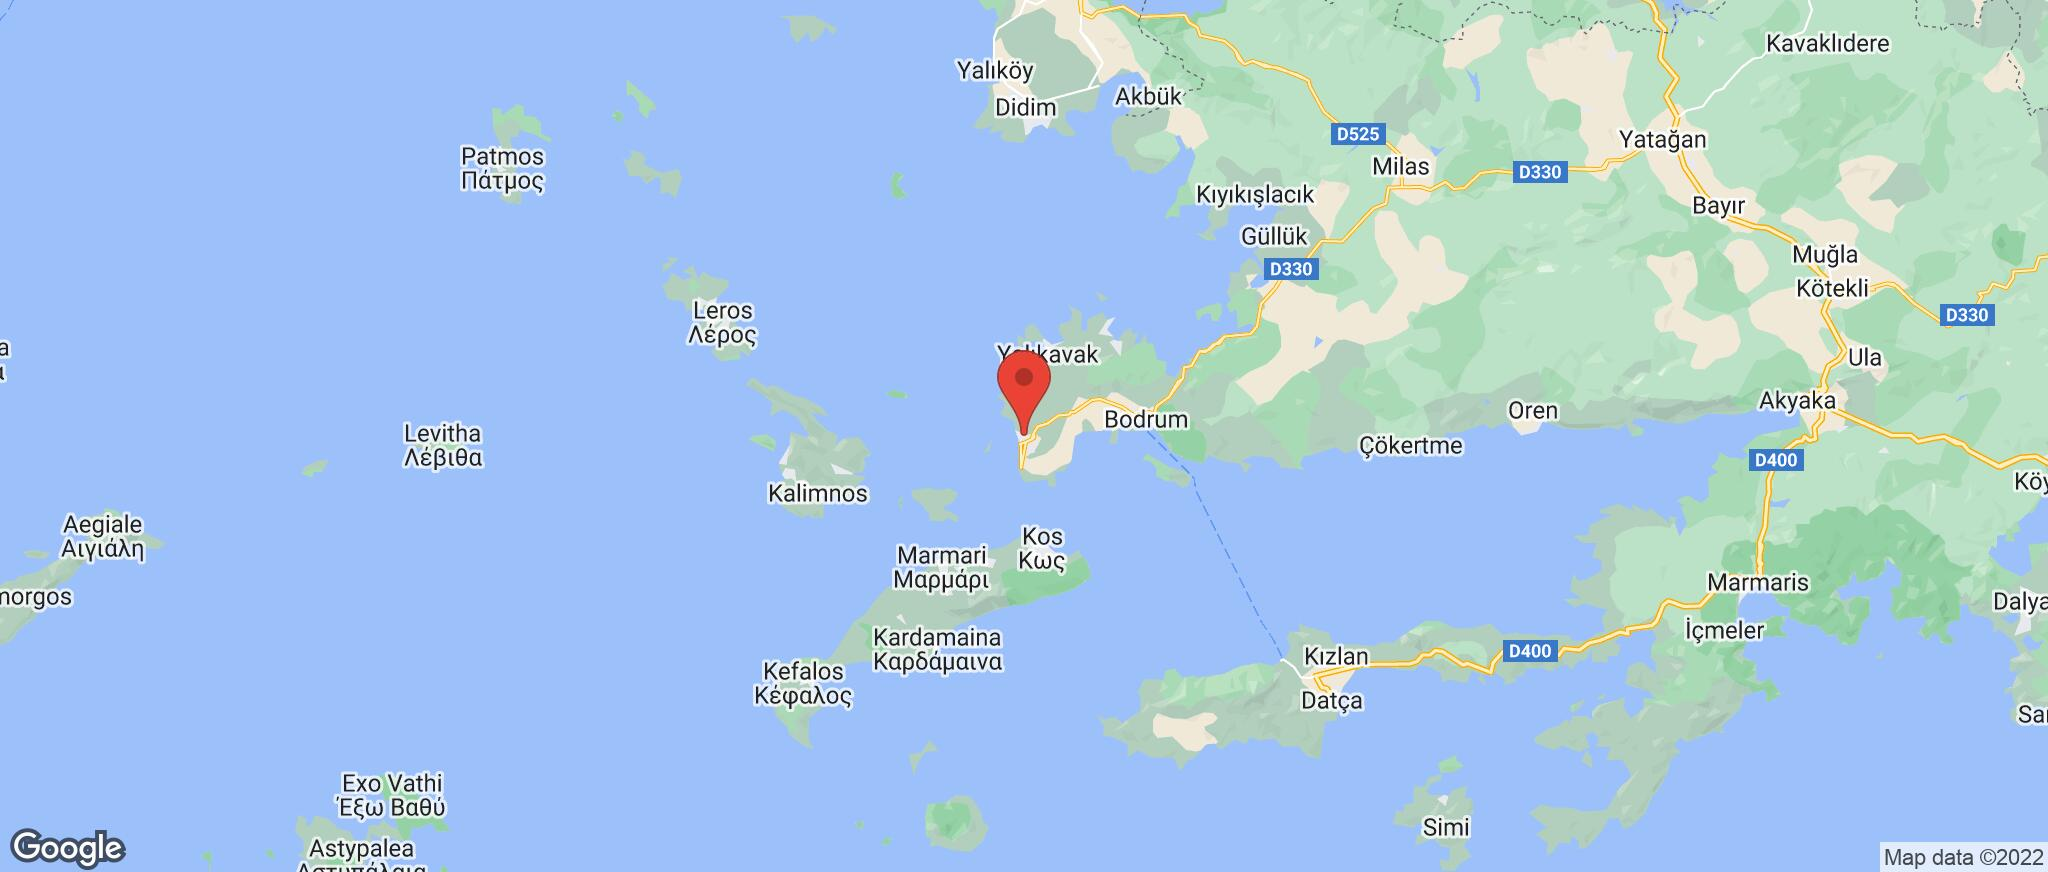 Map showing the location of Turgutreis